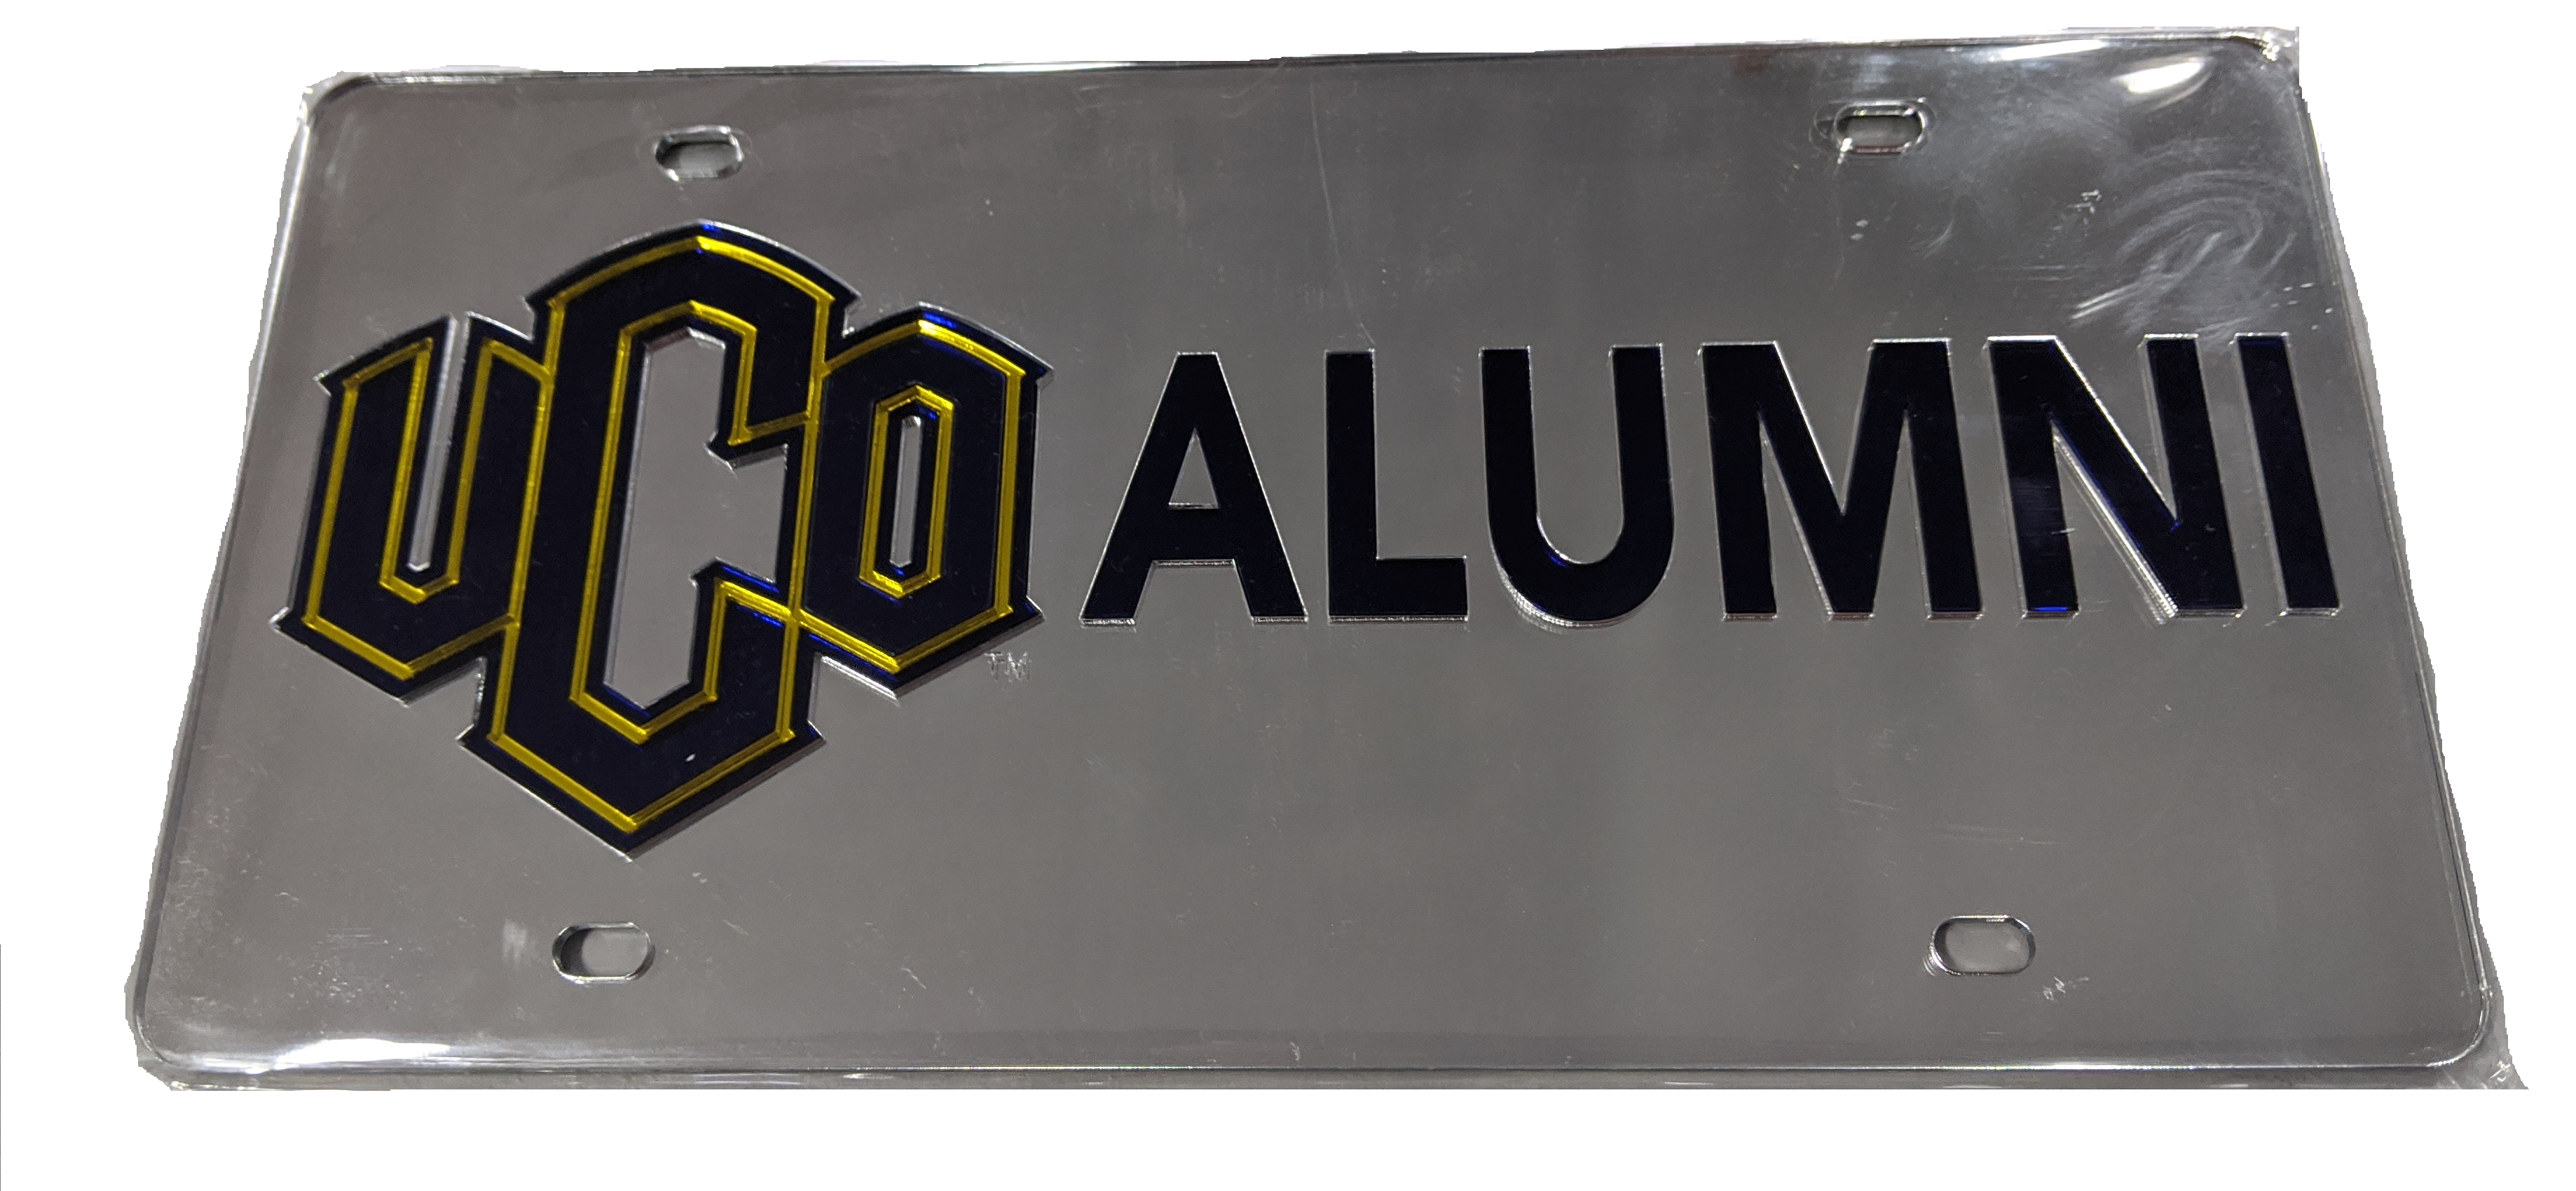 UCO Alumni License Plate